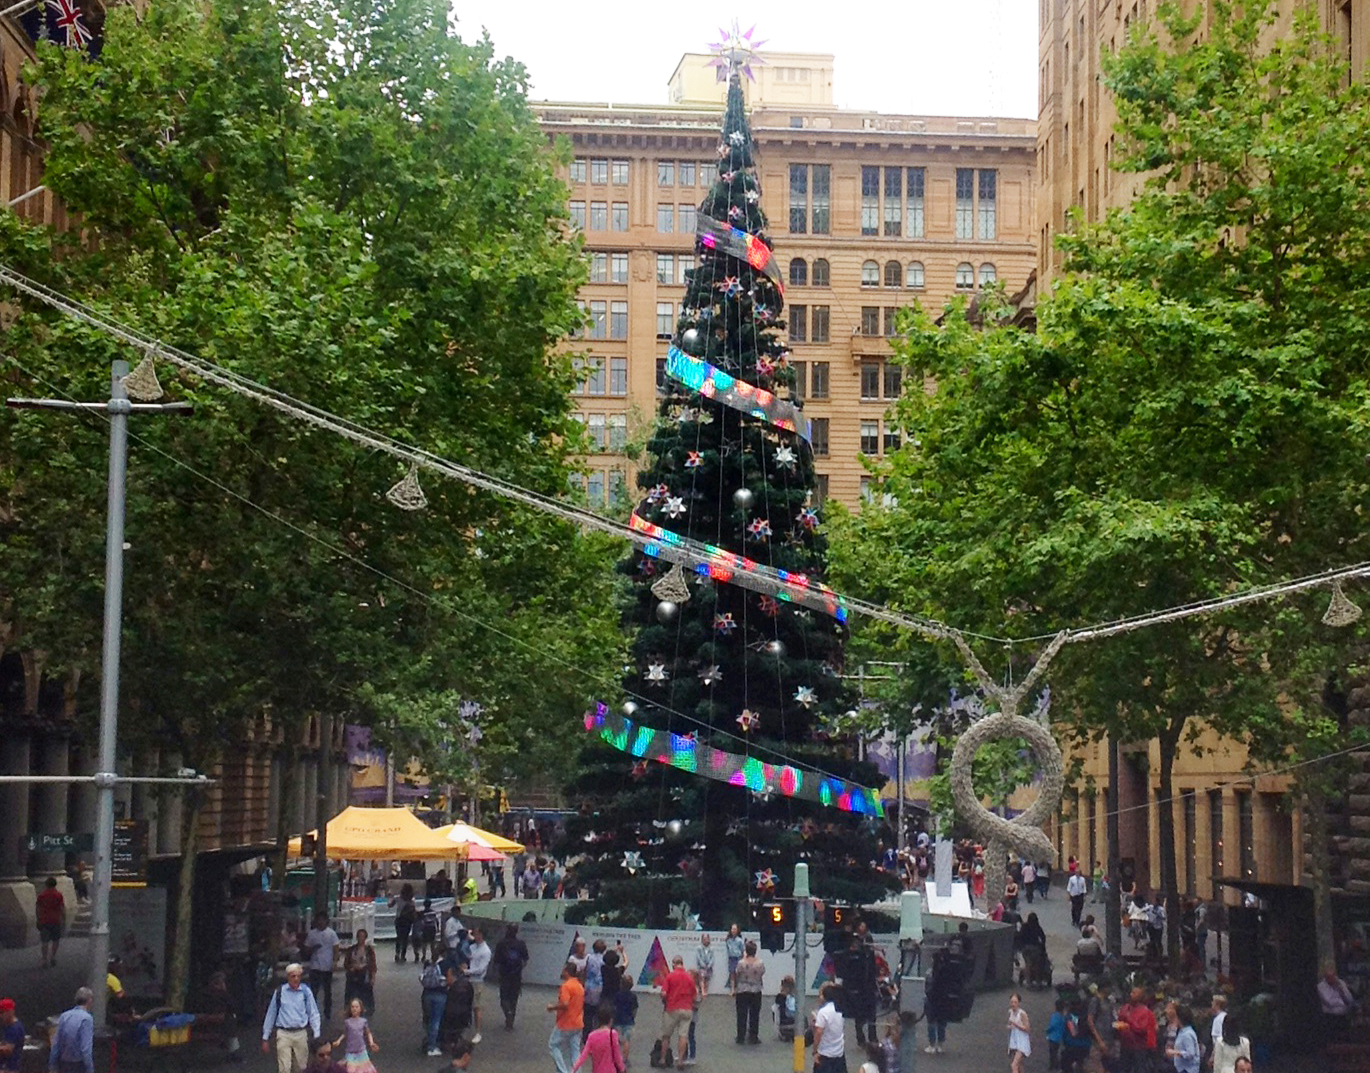 The arrival of the festive season in Sydney is marked by the appearance of the Martin Place Christmas tree.